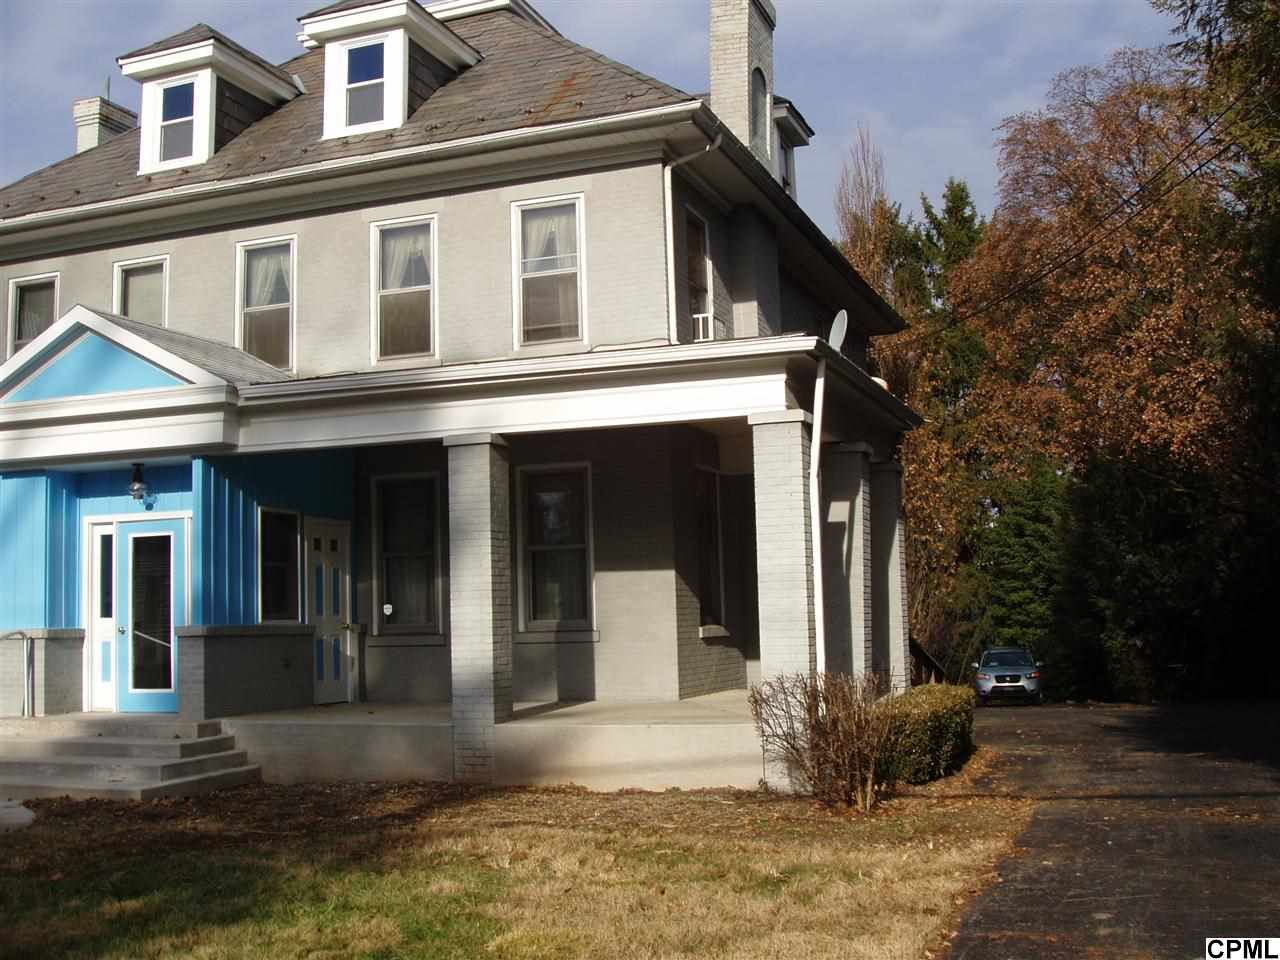 Rental Homes for Rent, ListingId:31201461, location: 616 W MAIN Mechanicsburg 17055